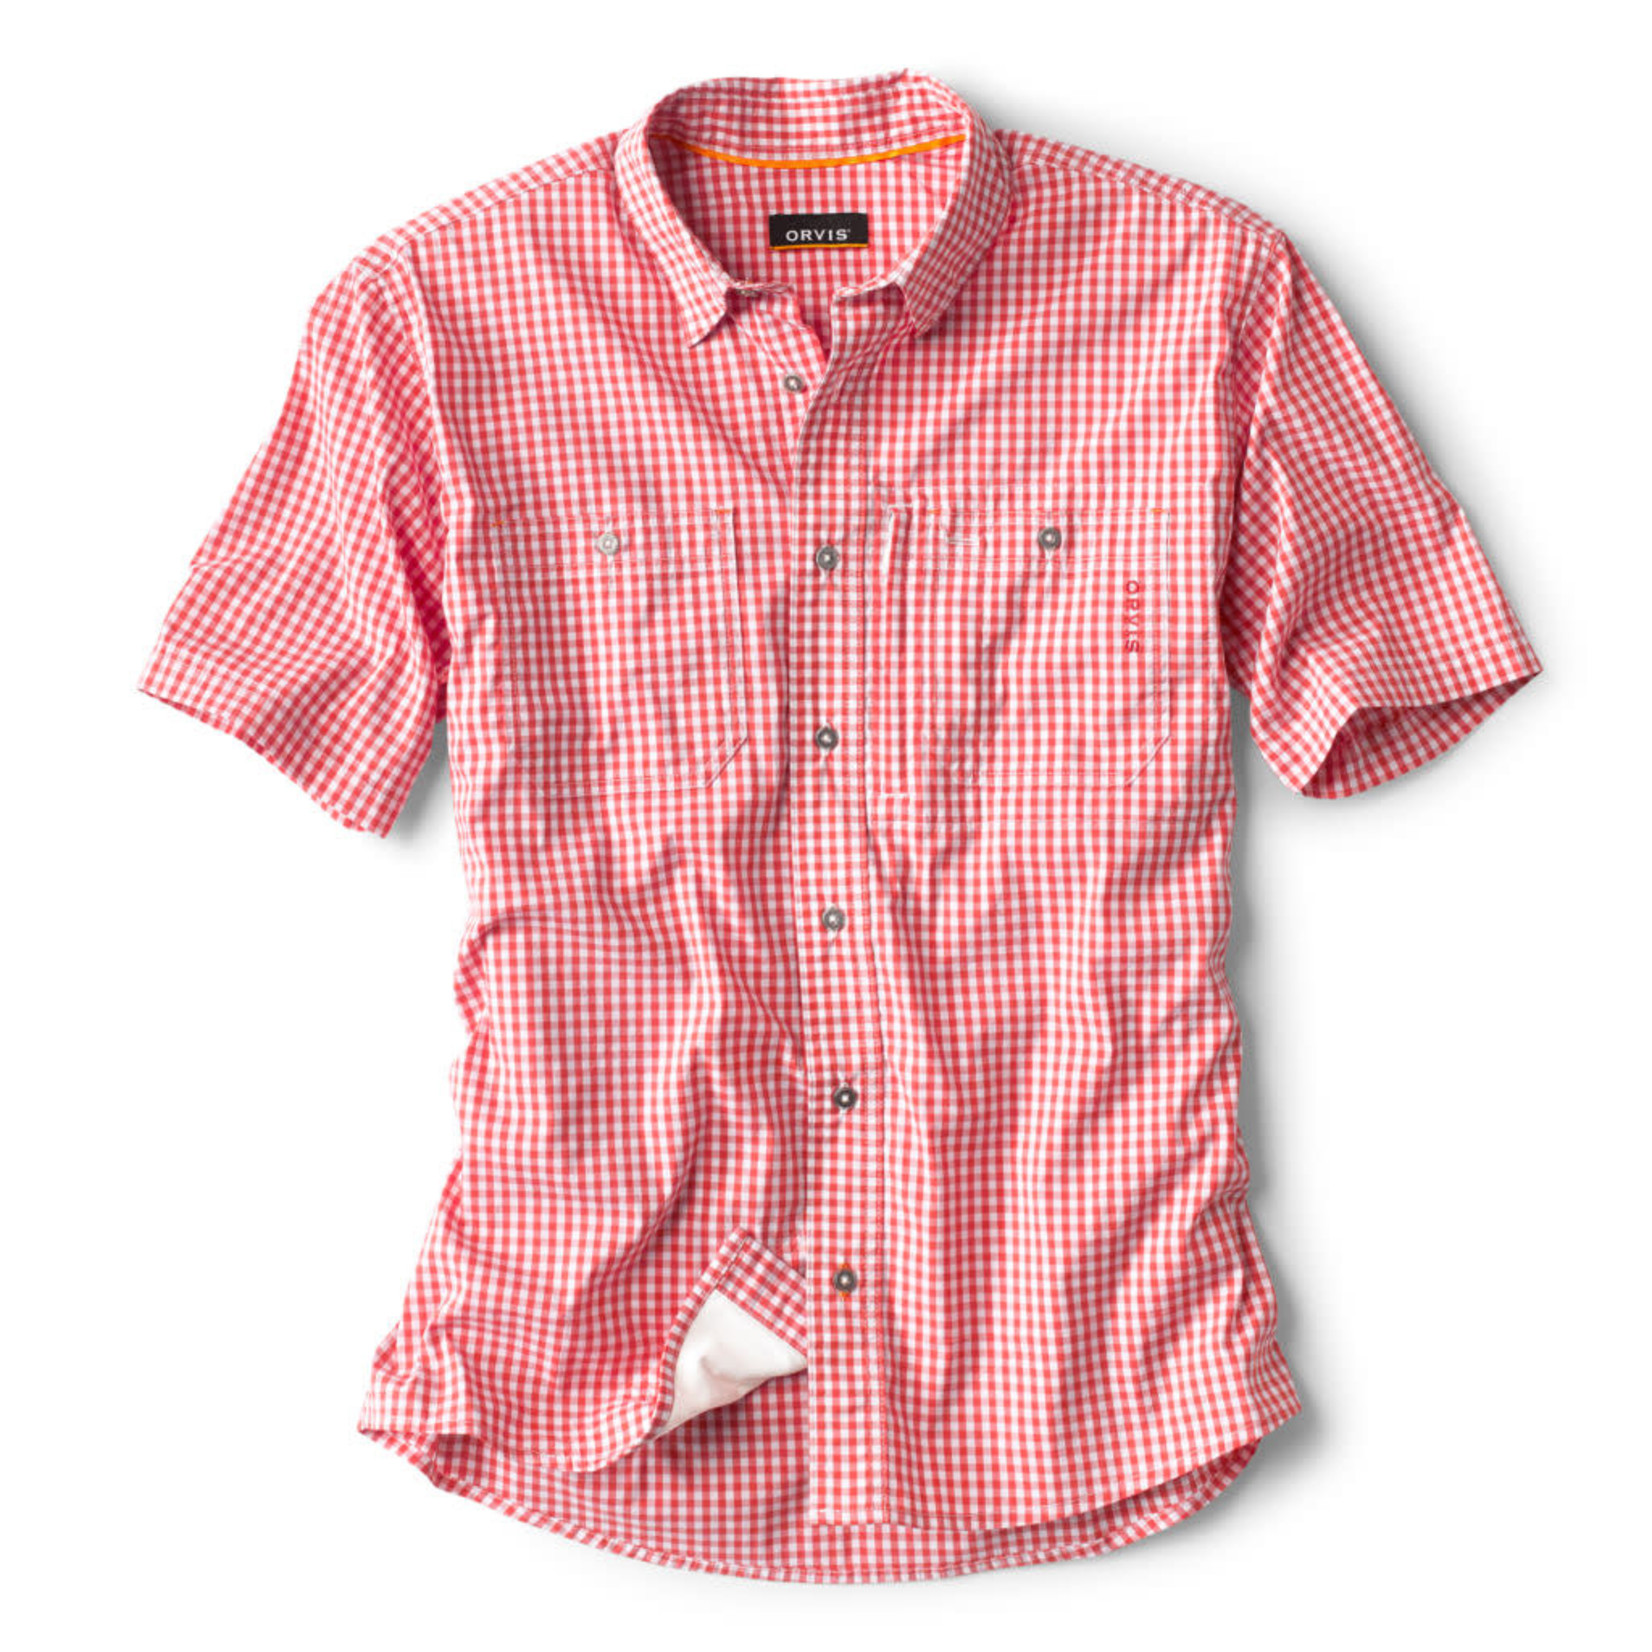 Orvis River Guide S/S